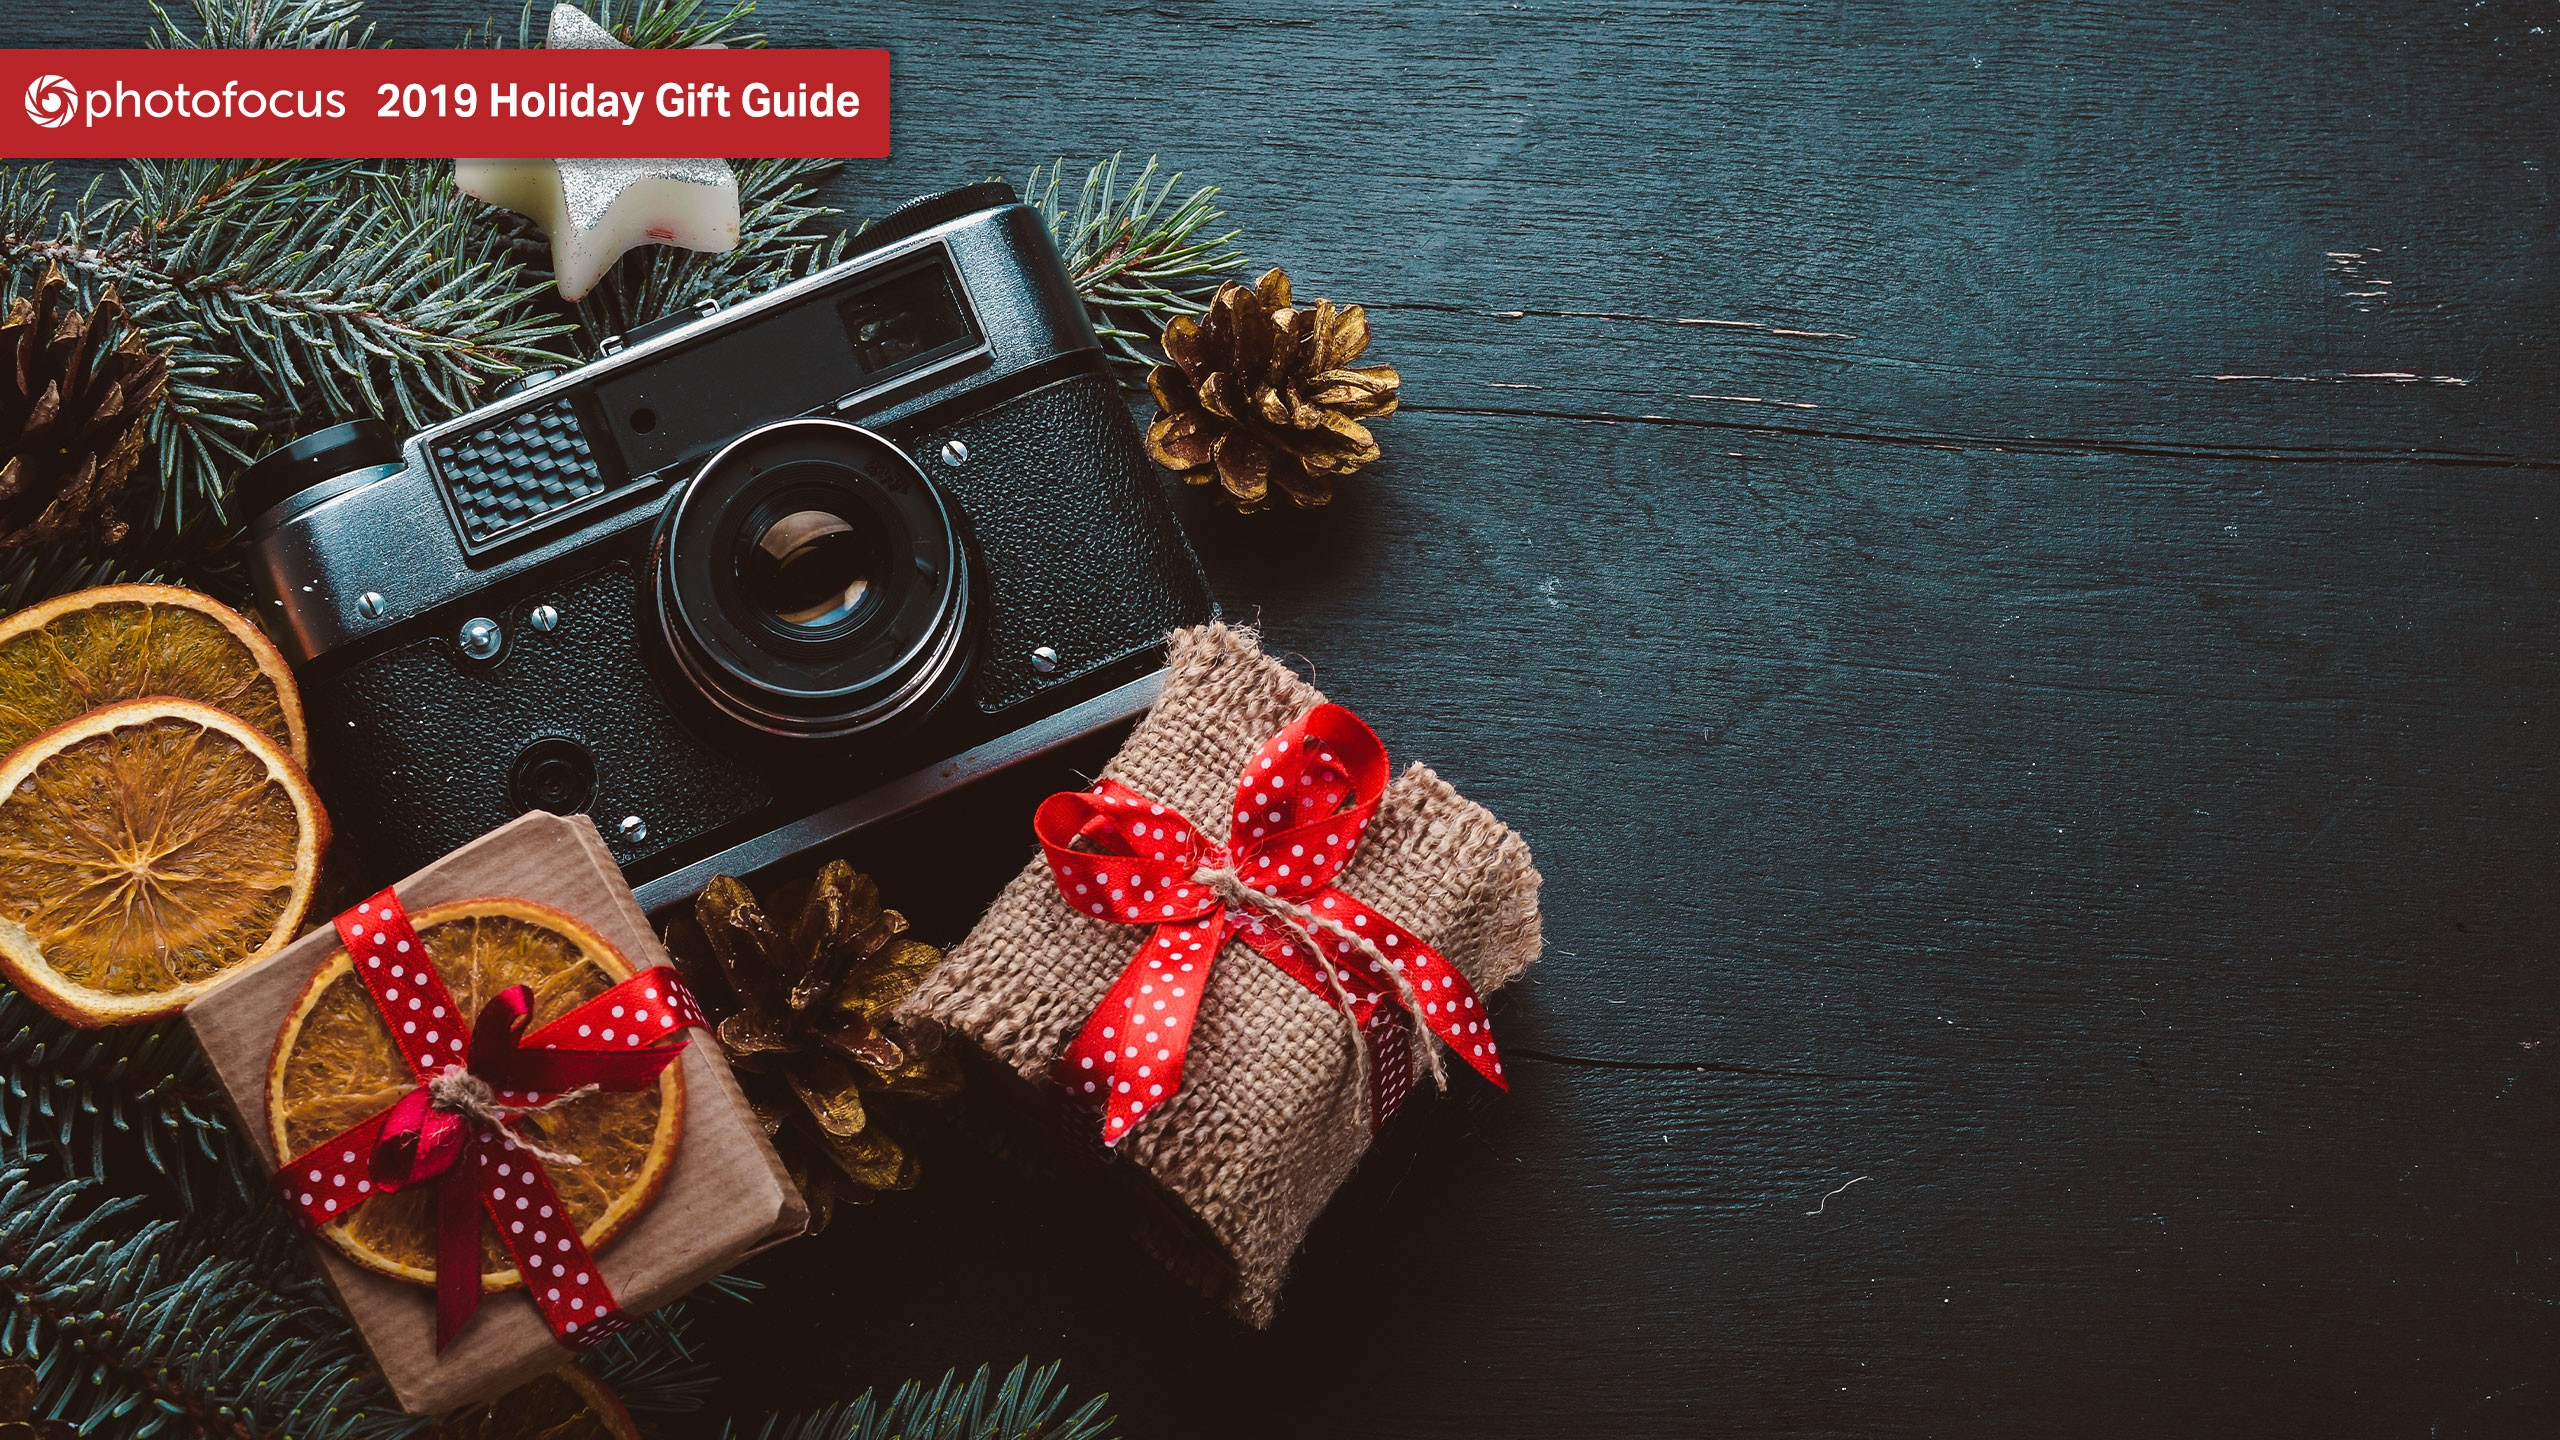 2019 Holiday Gift Guide: Our favorite gifts over $1000